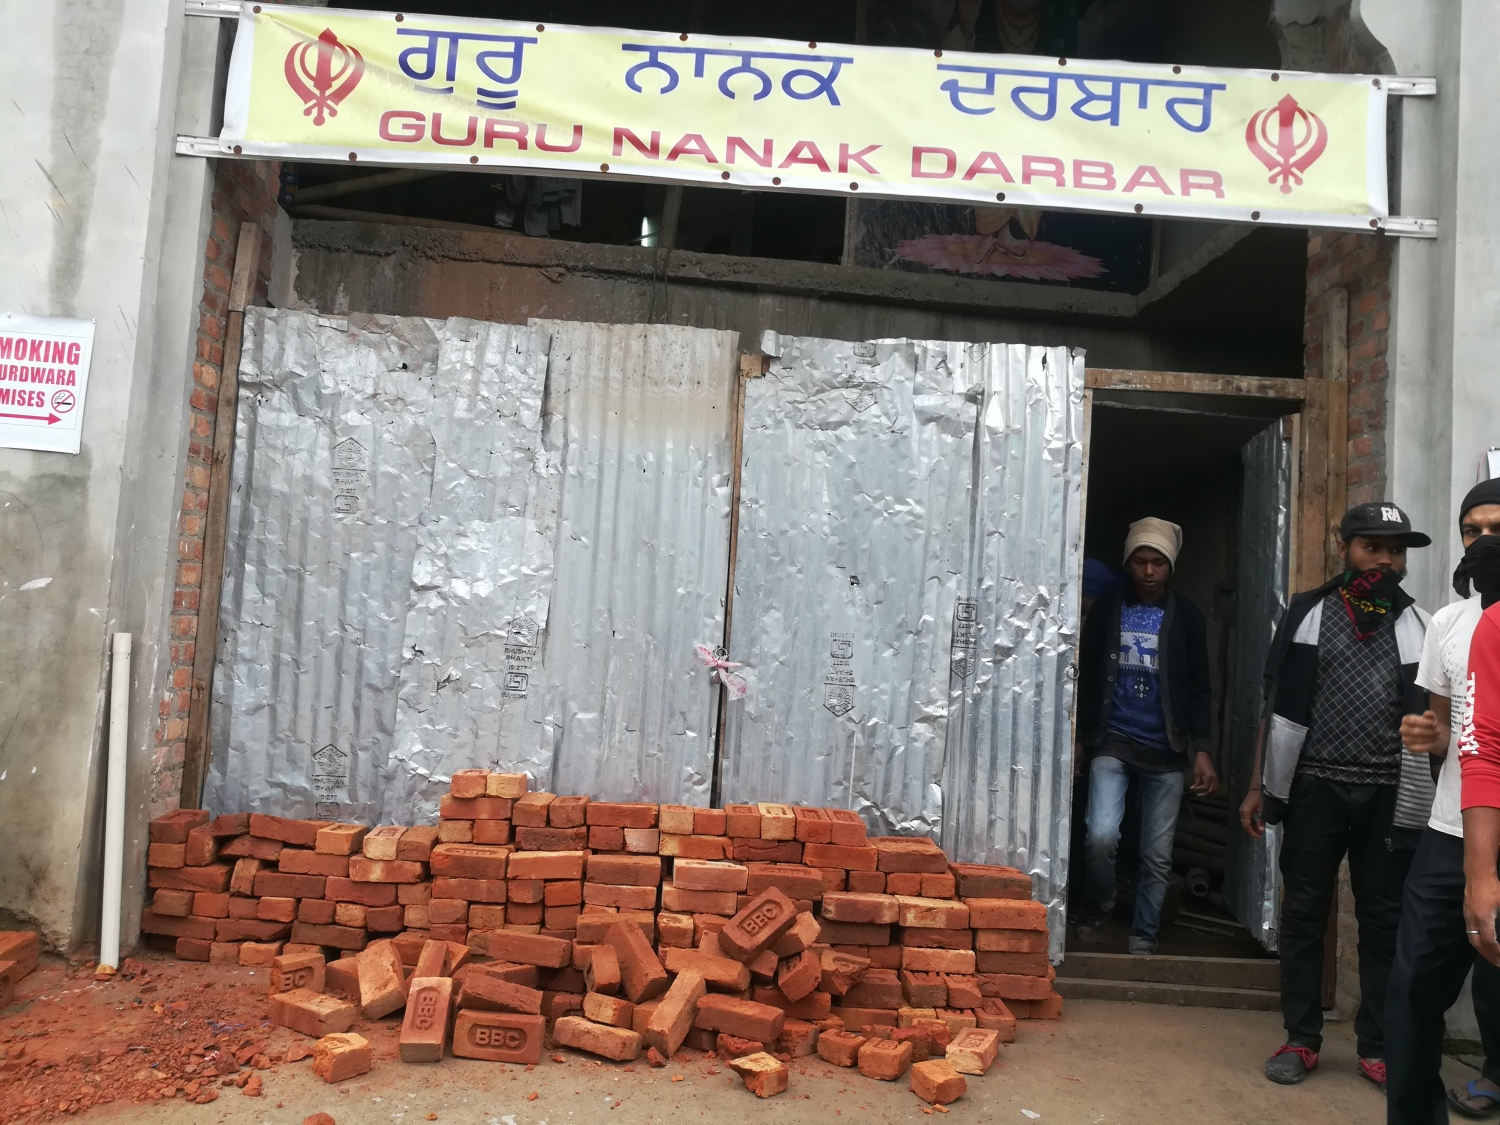 Residents of Punjabi Line have attempted to barricade the entrance of the local gurdwara.